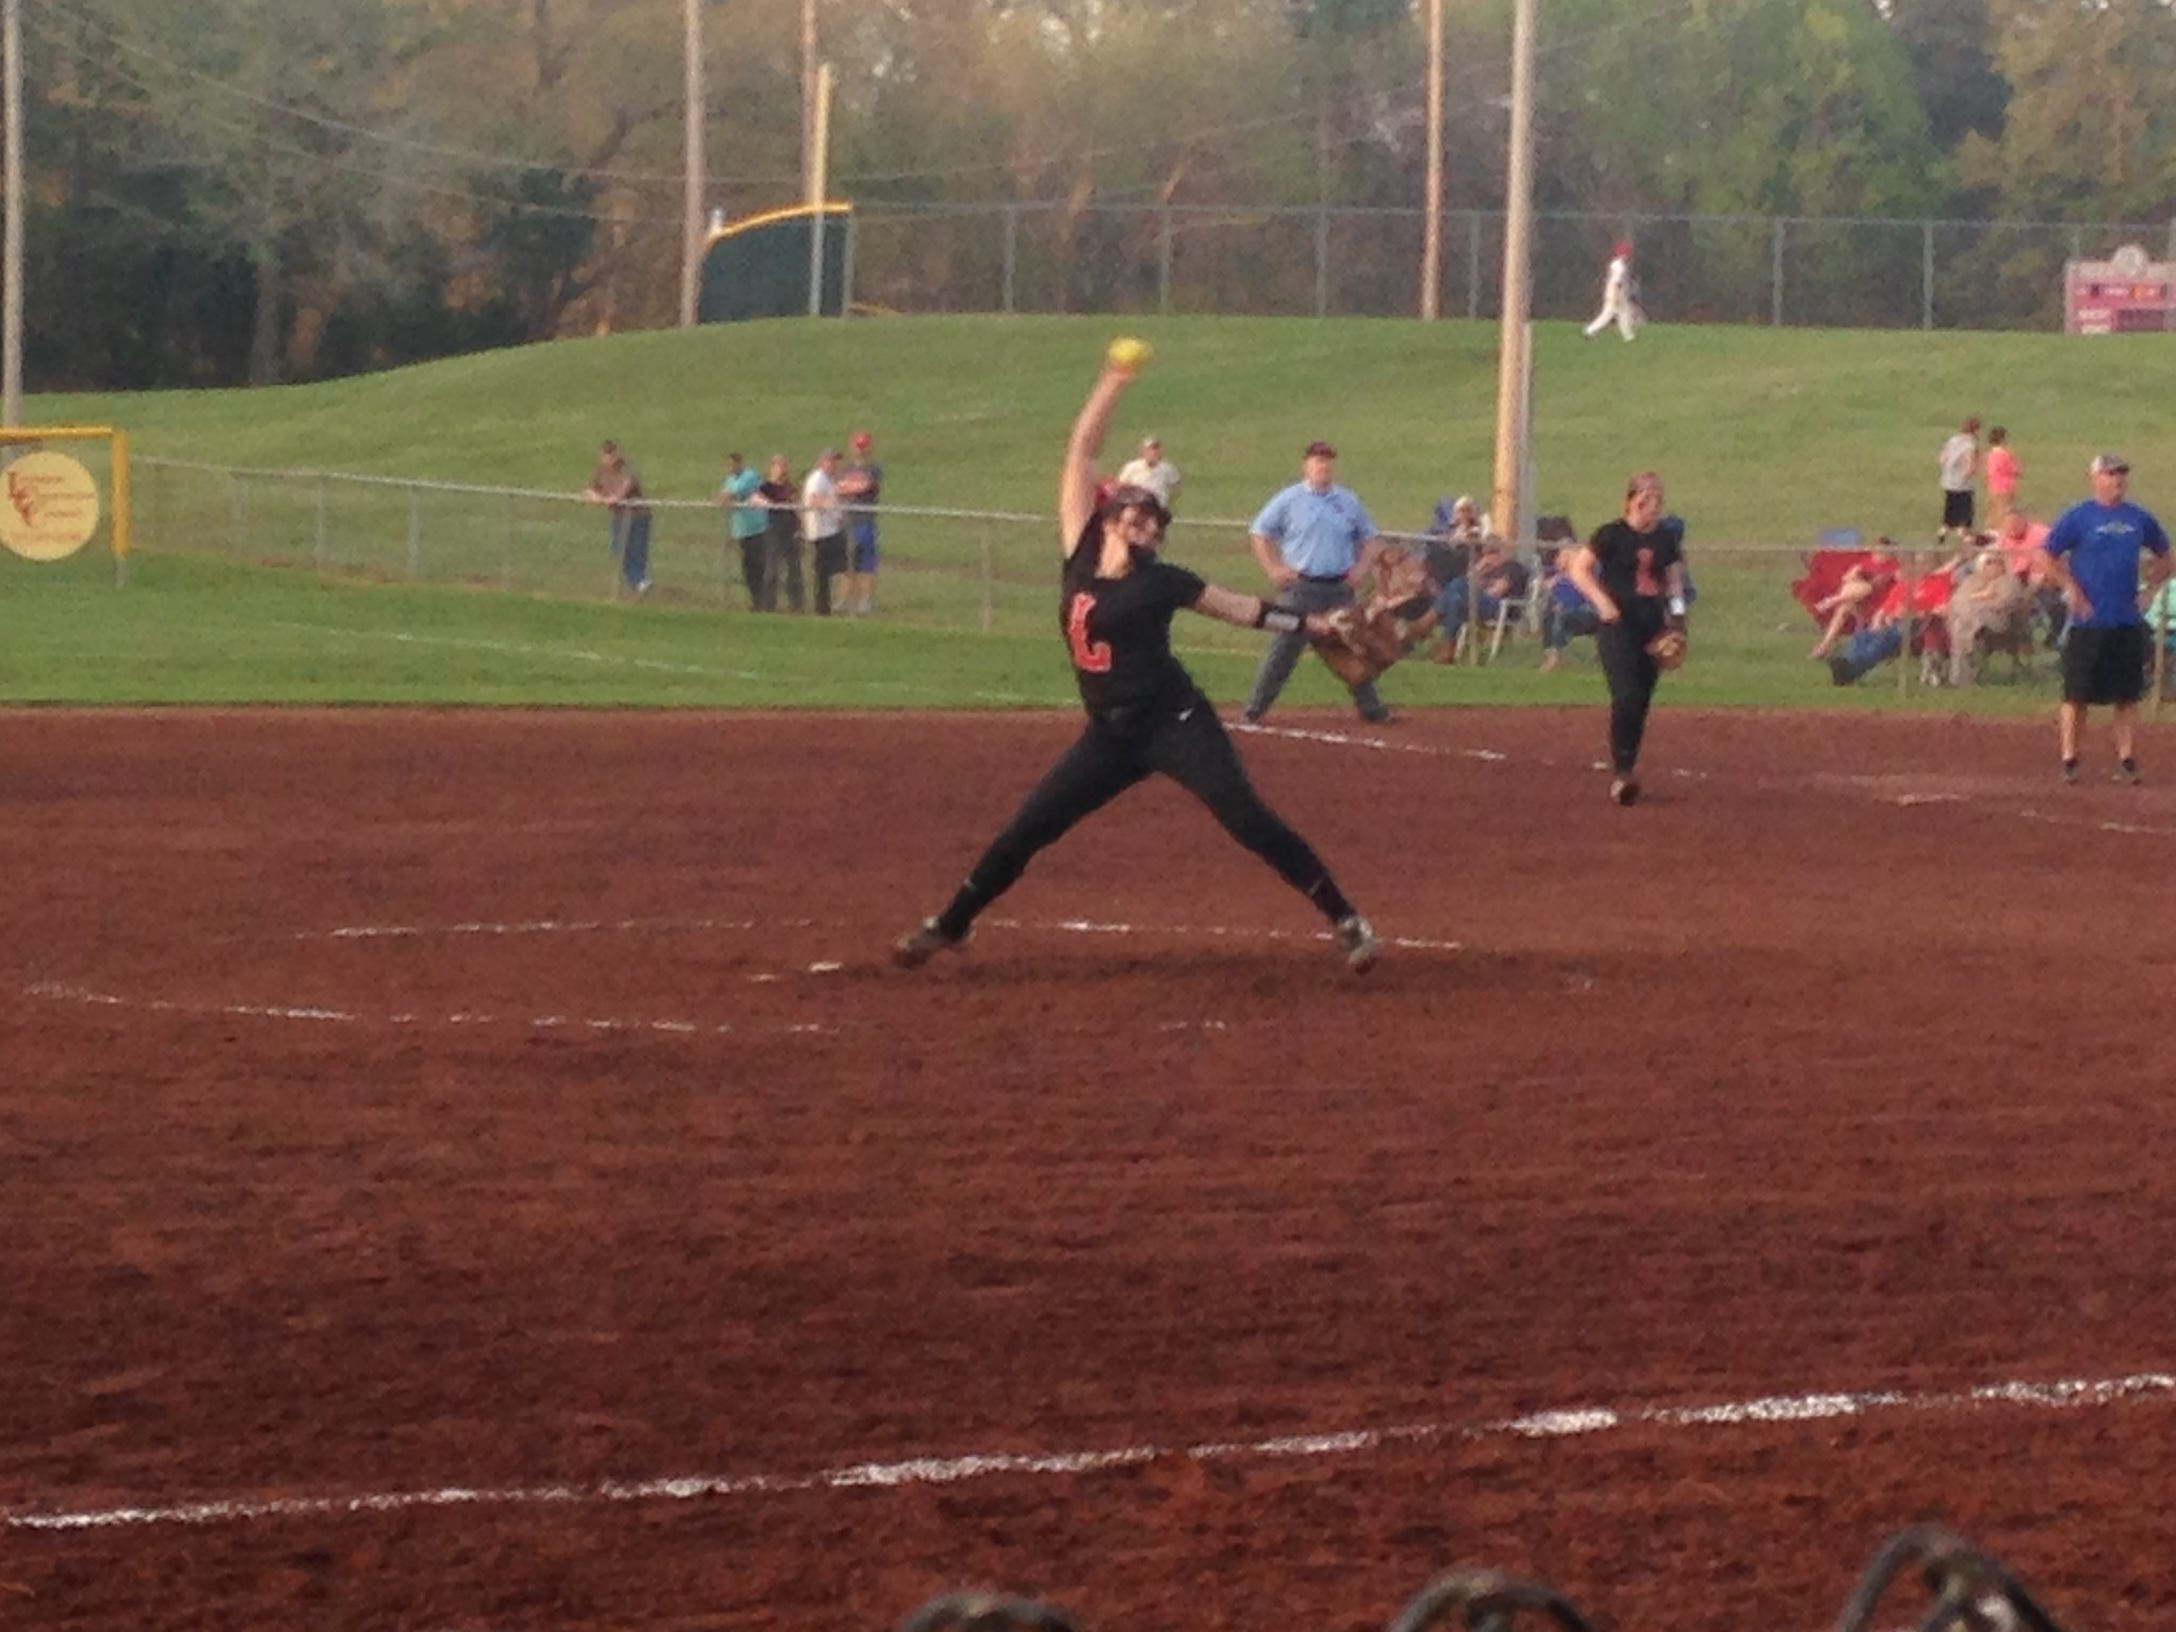 Lexington pitcher Natalie Cogdell threw a five-hit shutout against Chester County on Tuesday.